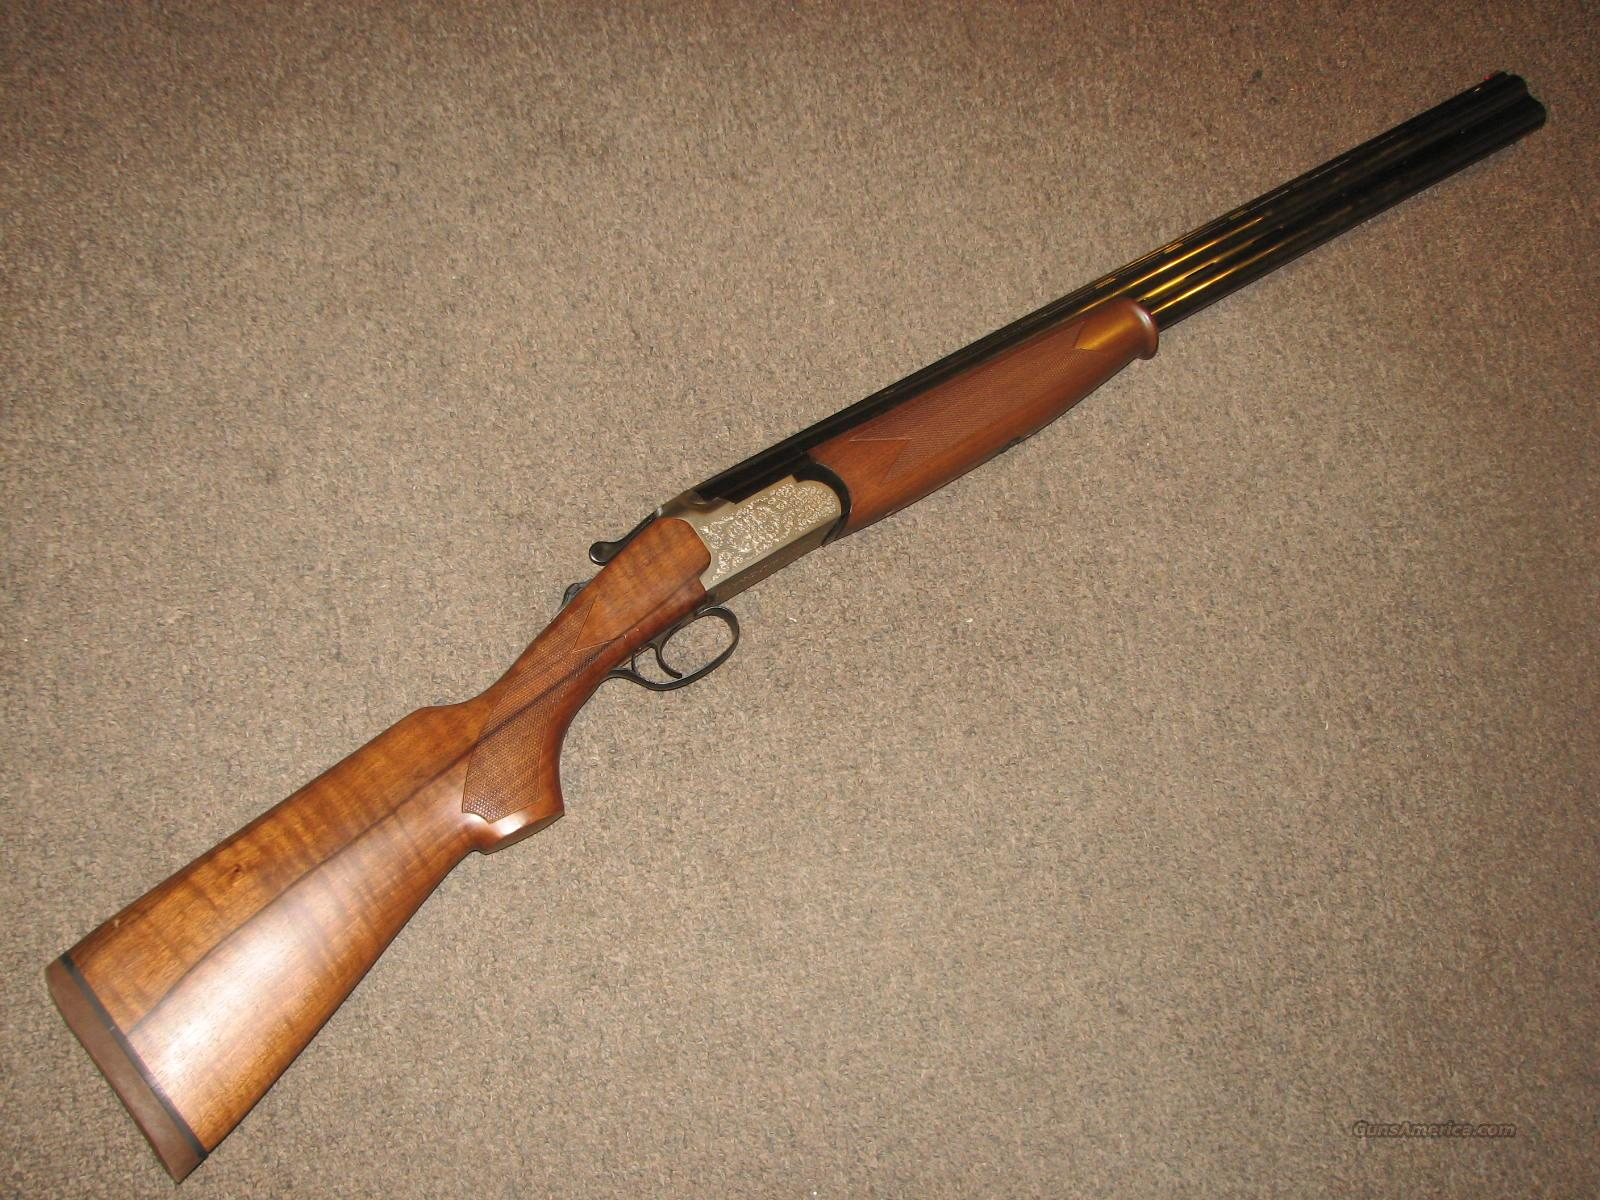 LANBER (SPAIN) 105 OVER/UNDER SHOTGUN 12 GA  Guns > Shotguns > L Misc Shotguns